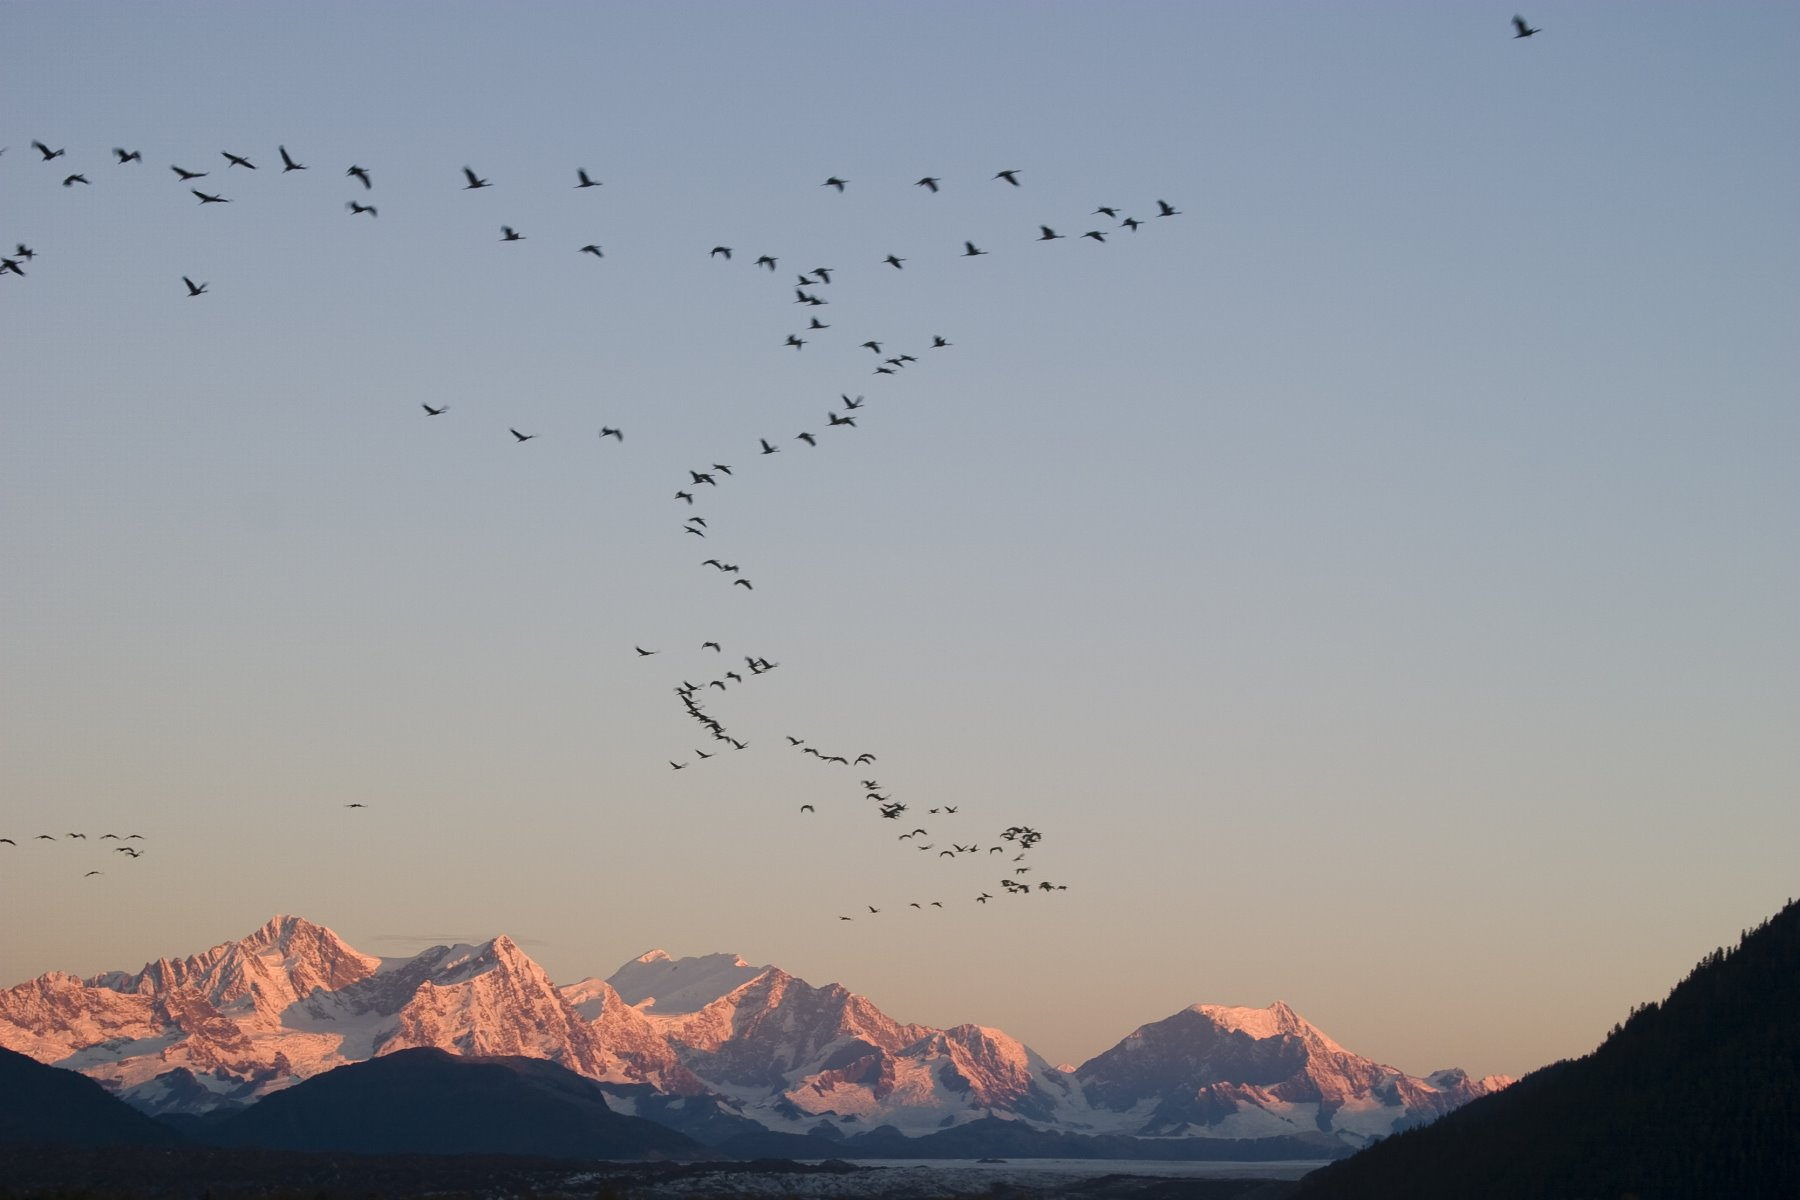 Sandhill cranes stop over in Glacier Bay as they migrate.